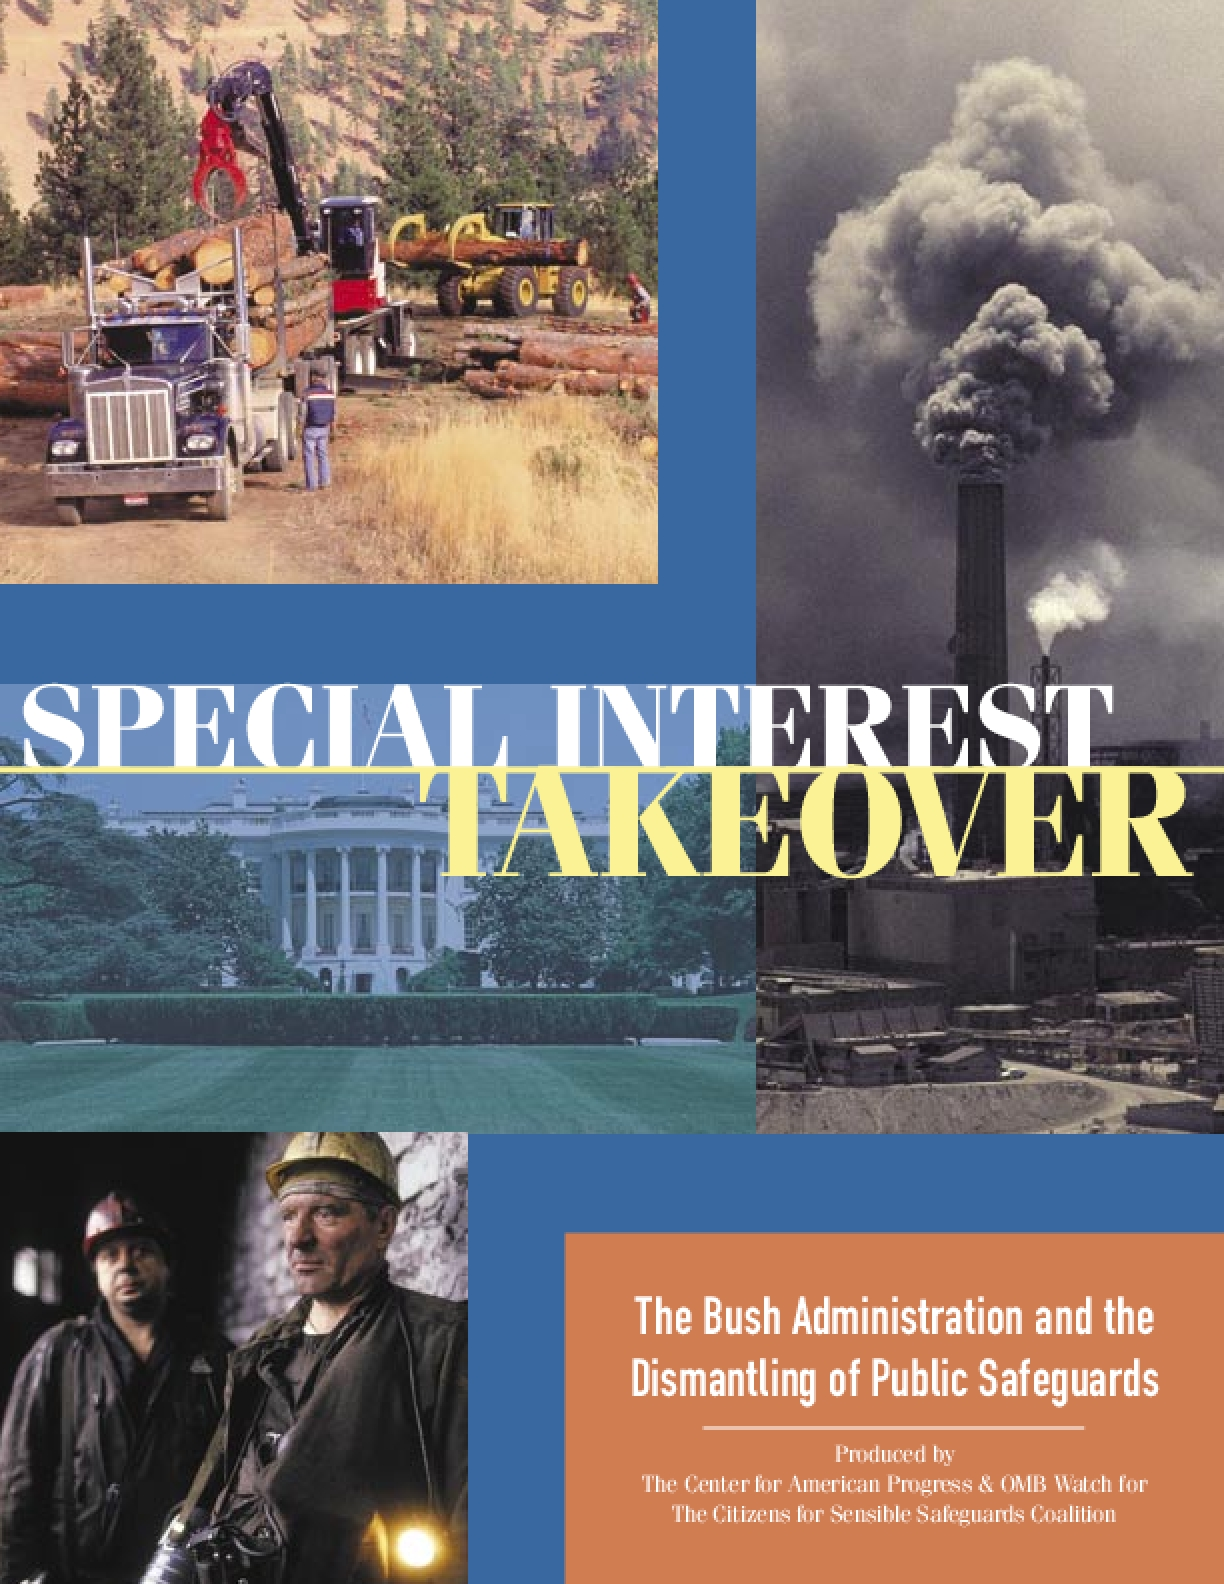 Special Interest Takeover: The Bush Administration and the Dismantling of Public Safeguards